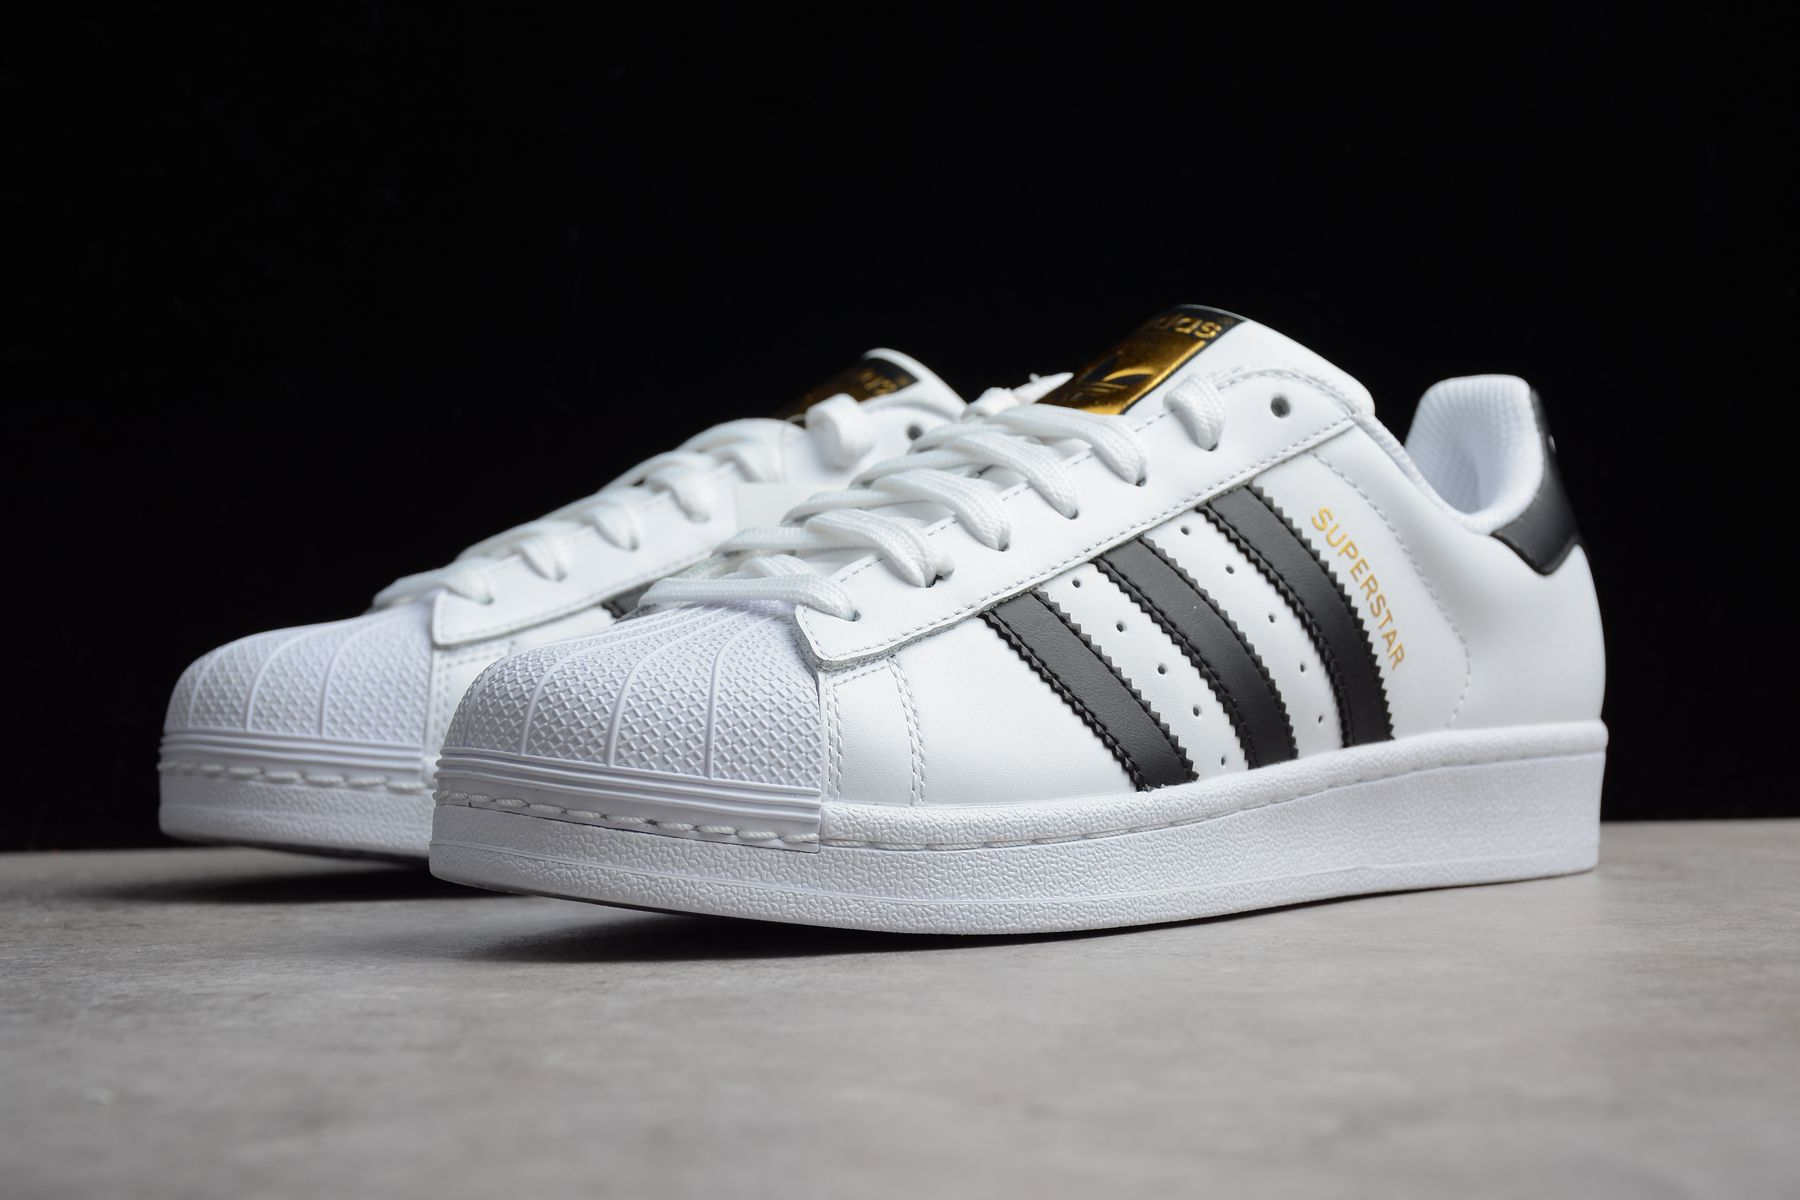 sports shoes f227f 2e9ae 2018 UK FR Trainers Adidas Superstar White Black c77124